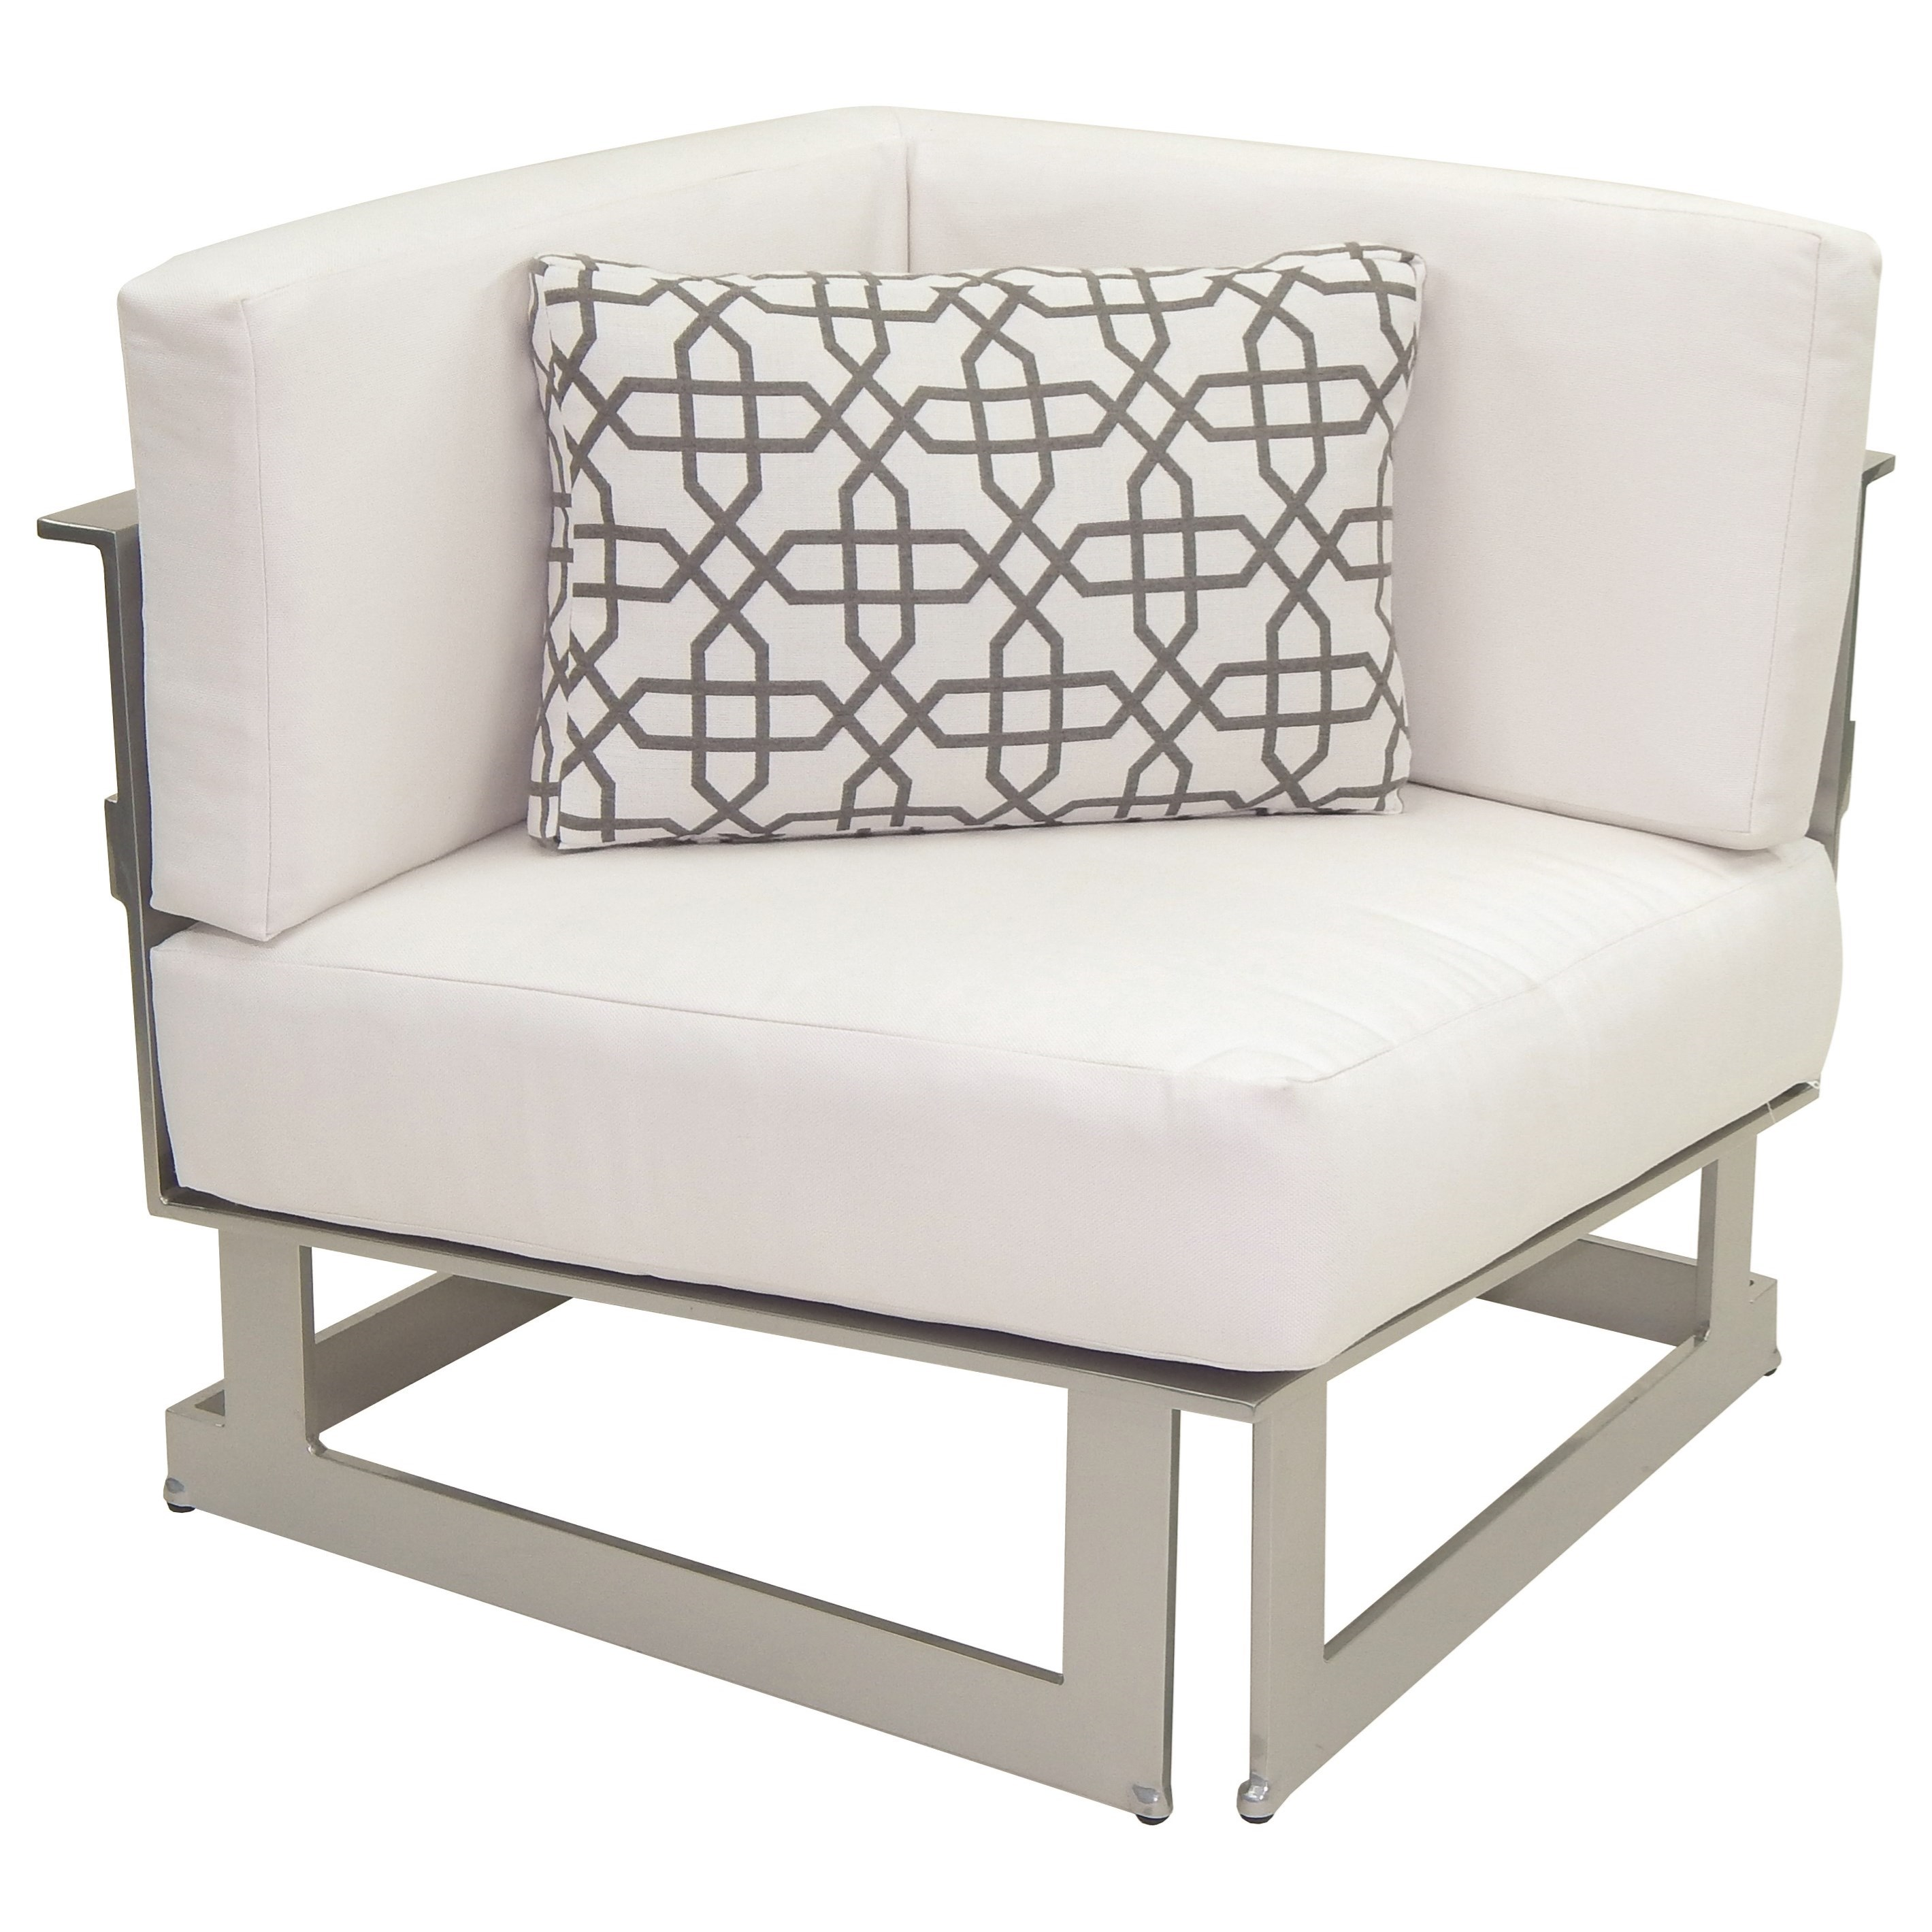 Eclipse Sectional Square Corner Unit w/ One Pillow by Castelle by Pride Family Brands at Baer's Furniture